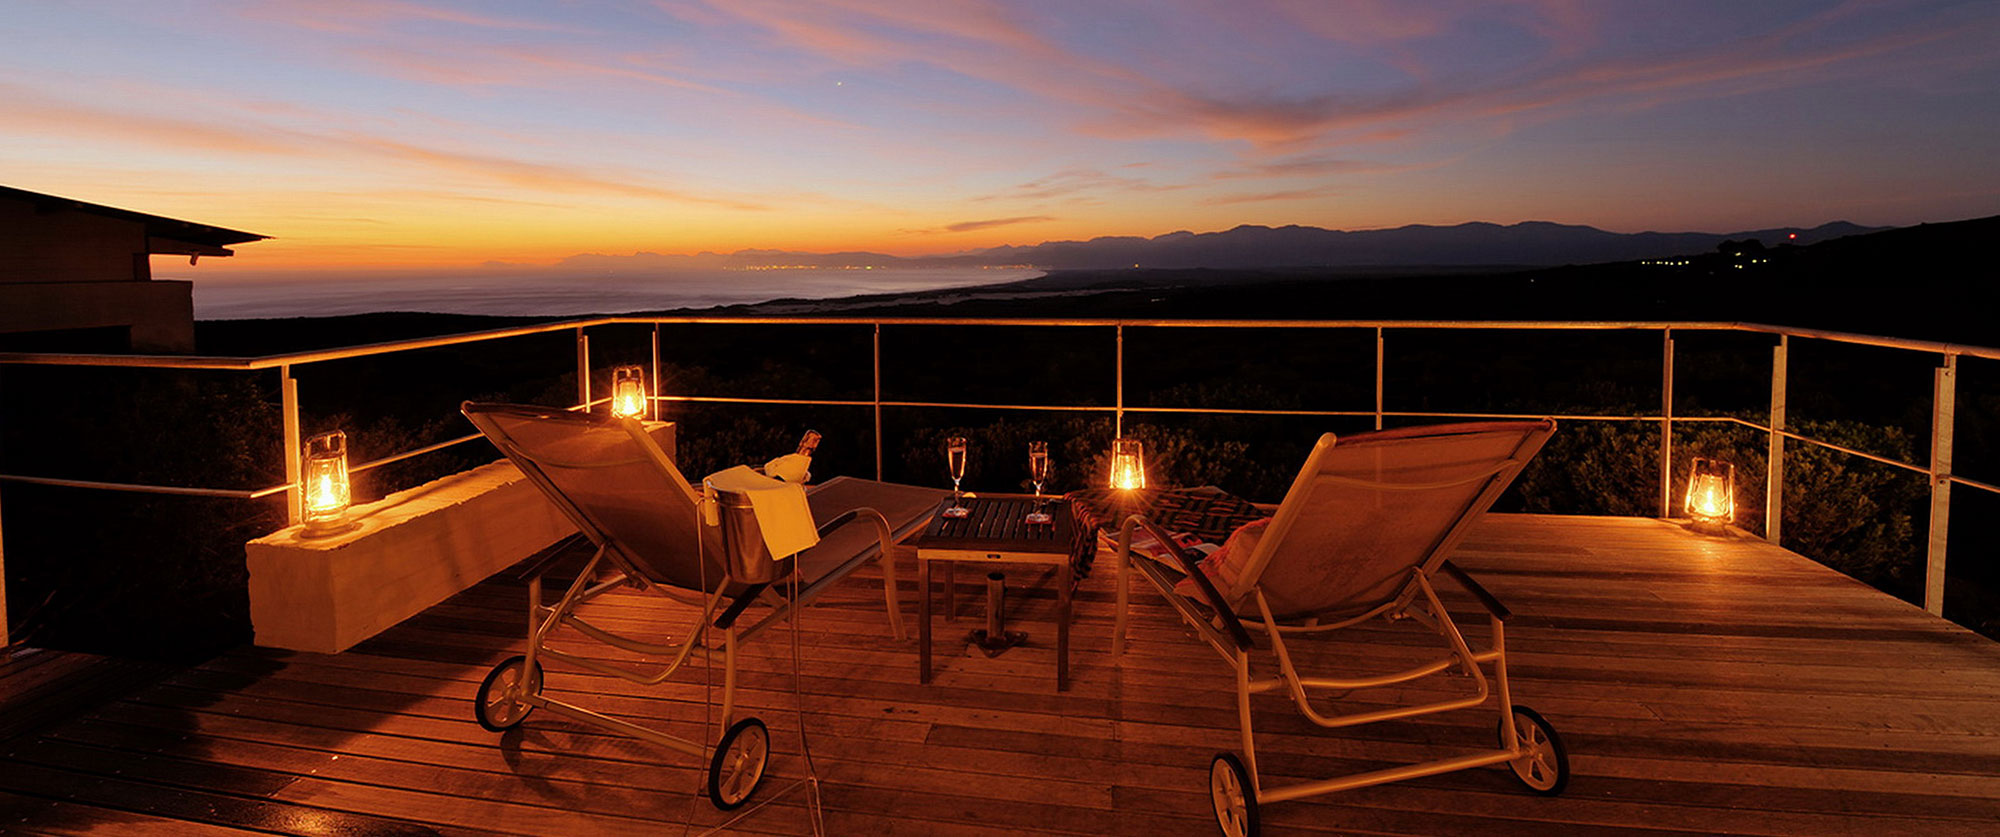 Grootbos Forest Lodge South Africa - Sunset View